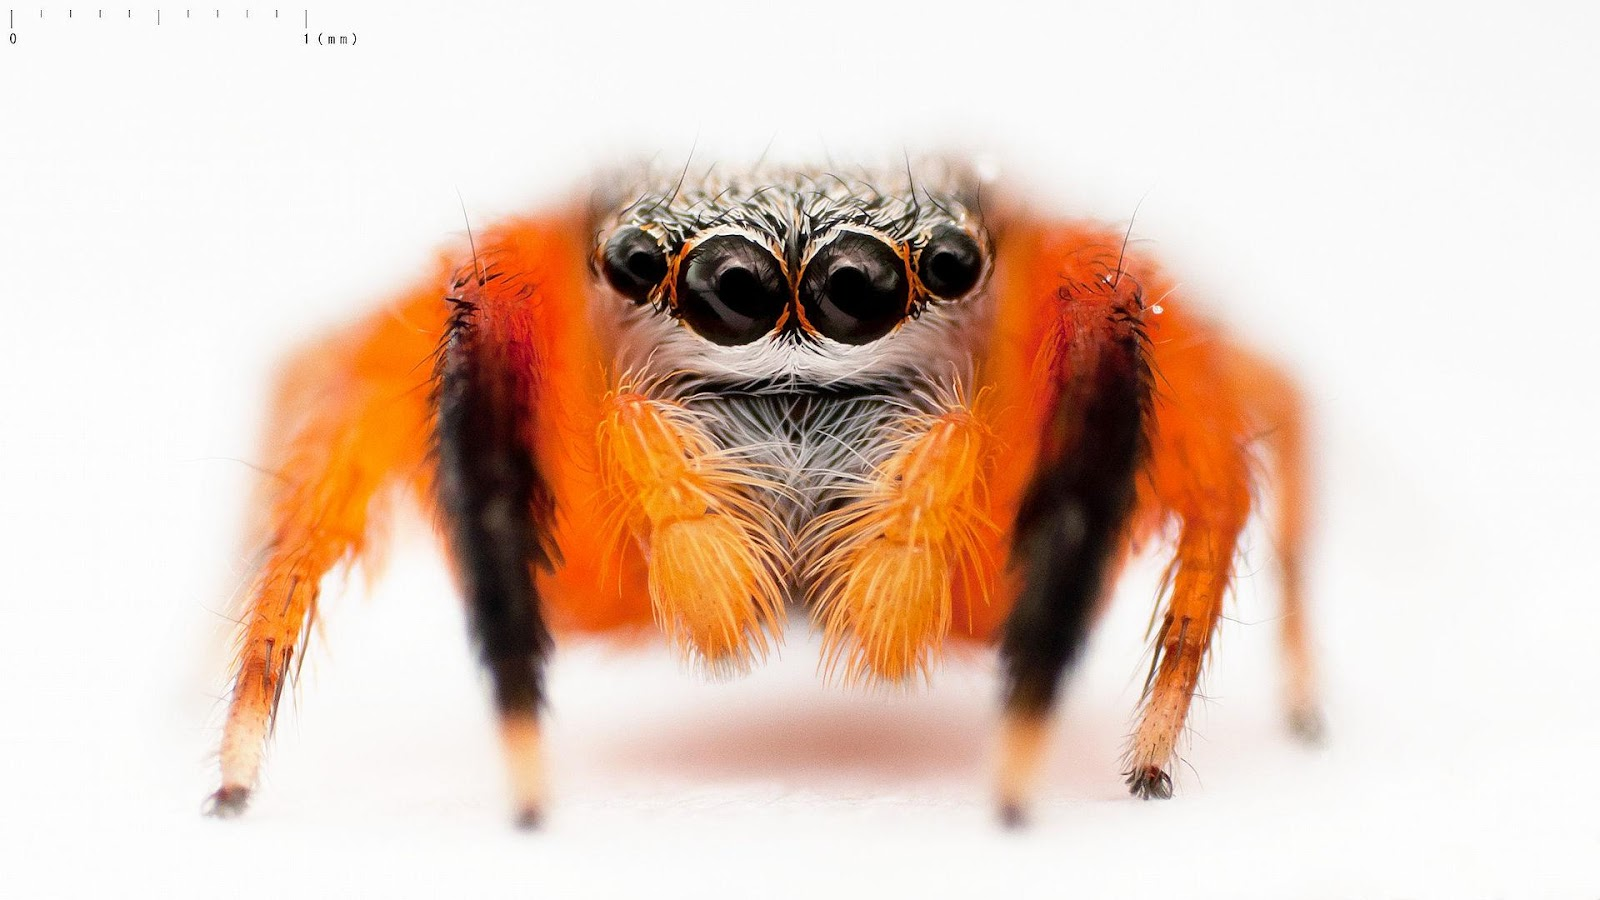 C:\Users\PatK\Pictures\Euophrys_kataokai_DSC_8526 Adorable Jumping Spider Japanese.jpg